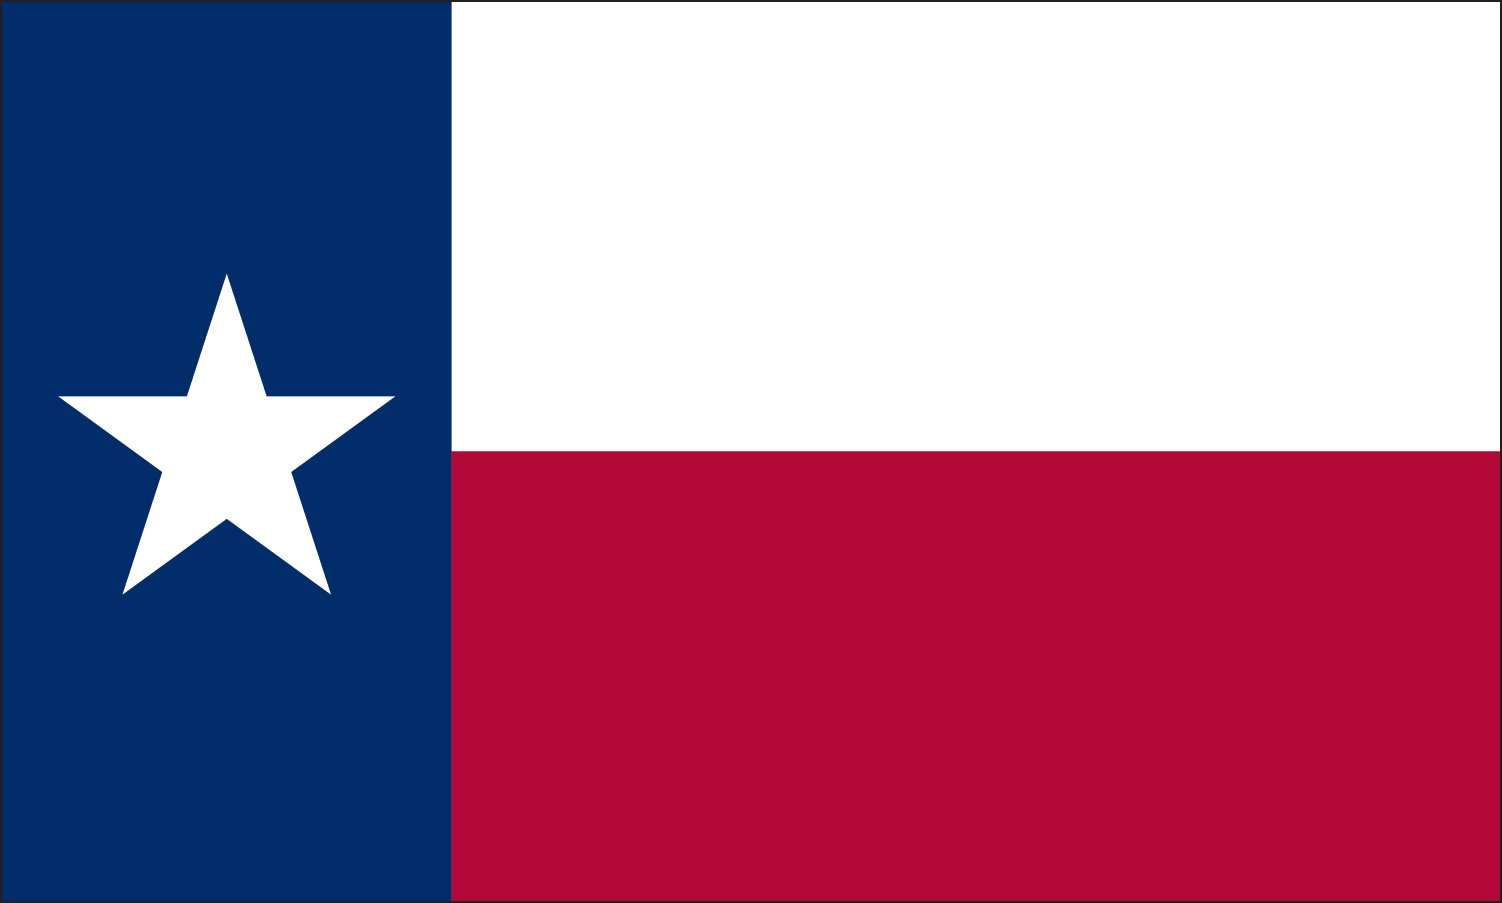 Valley Forge Flag 5-Foot by 8-Foot Commercial Polyester Texas State Flag with Appliqued Star and Sewn Components by Valley Forge